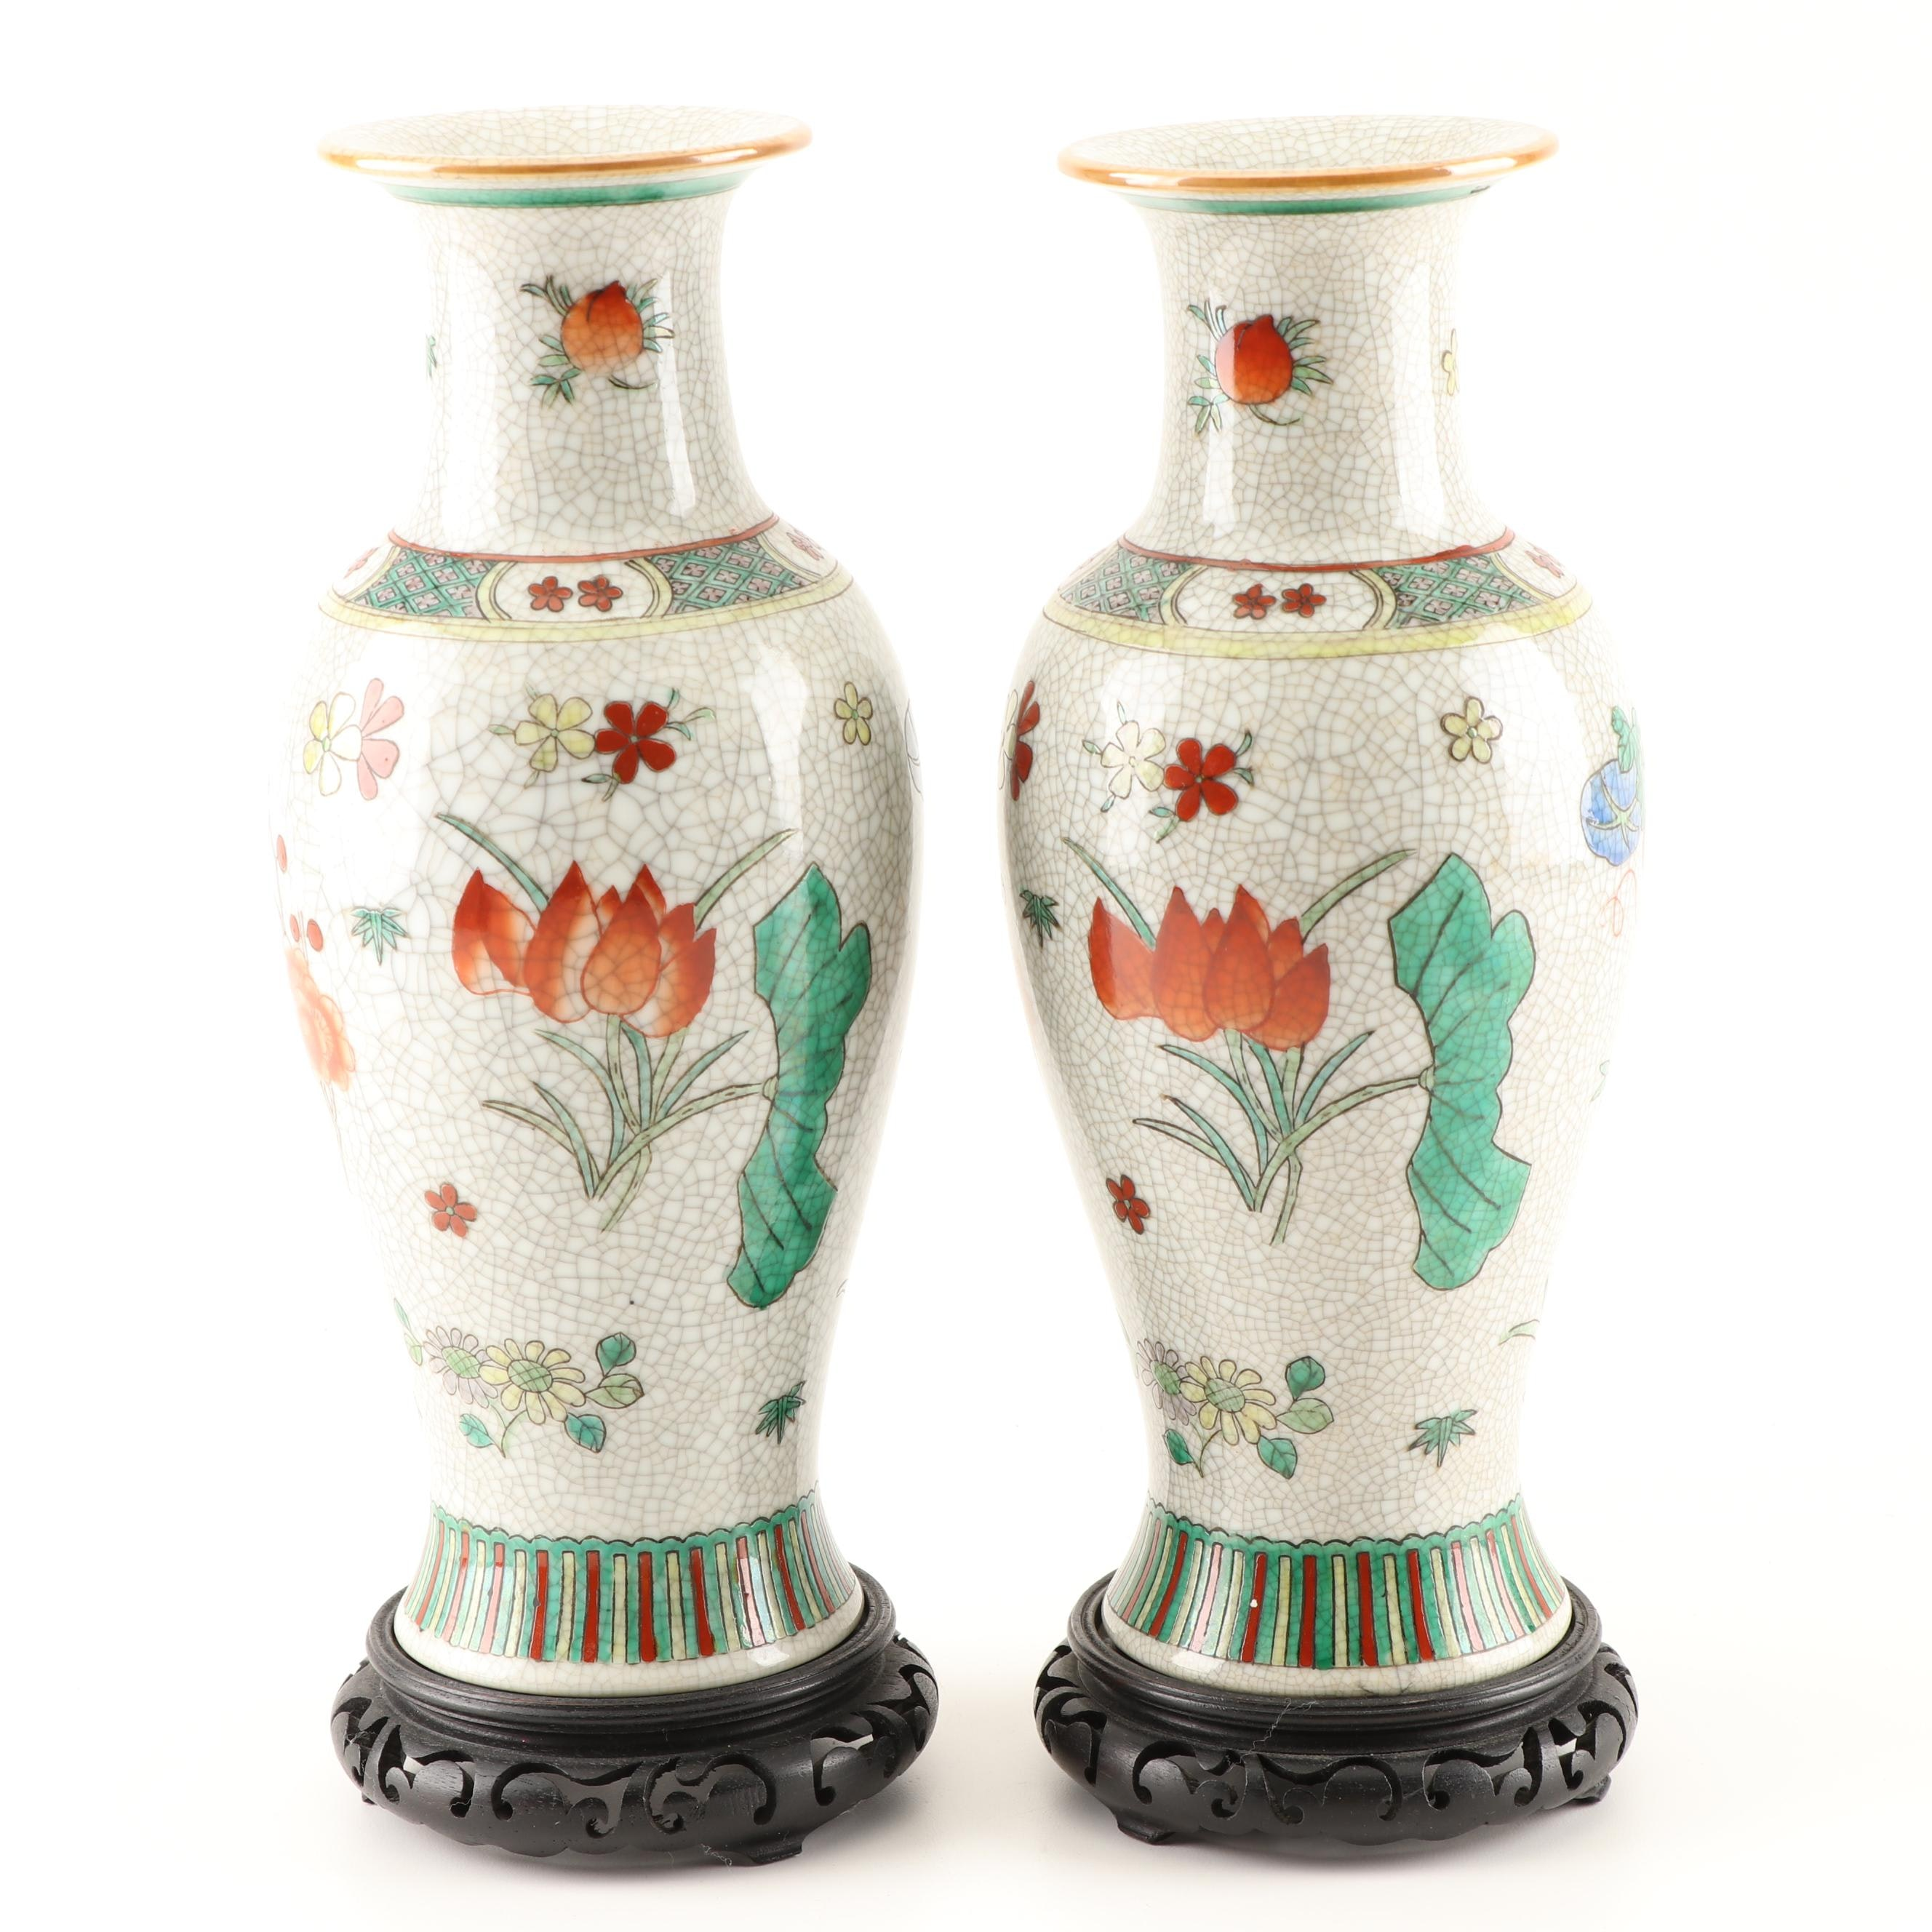 Chinese Craquelure Vases with Stands